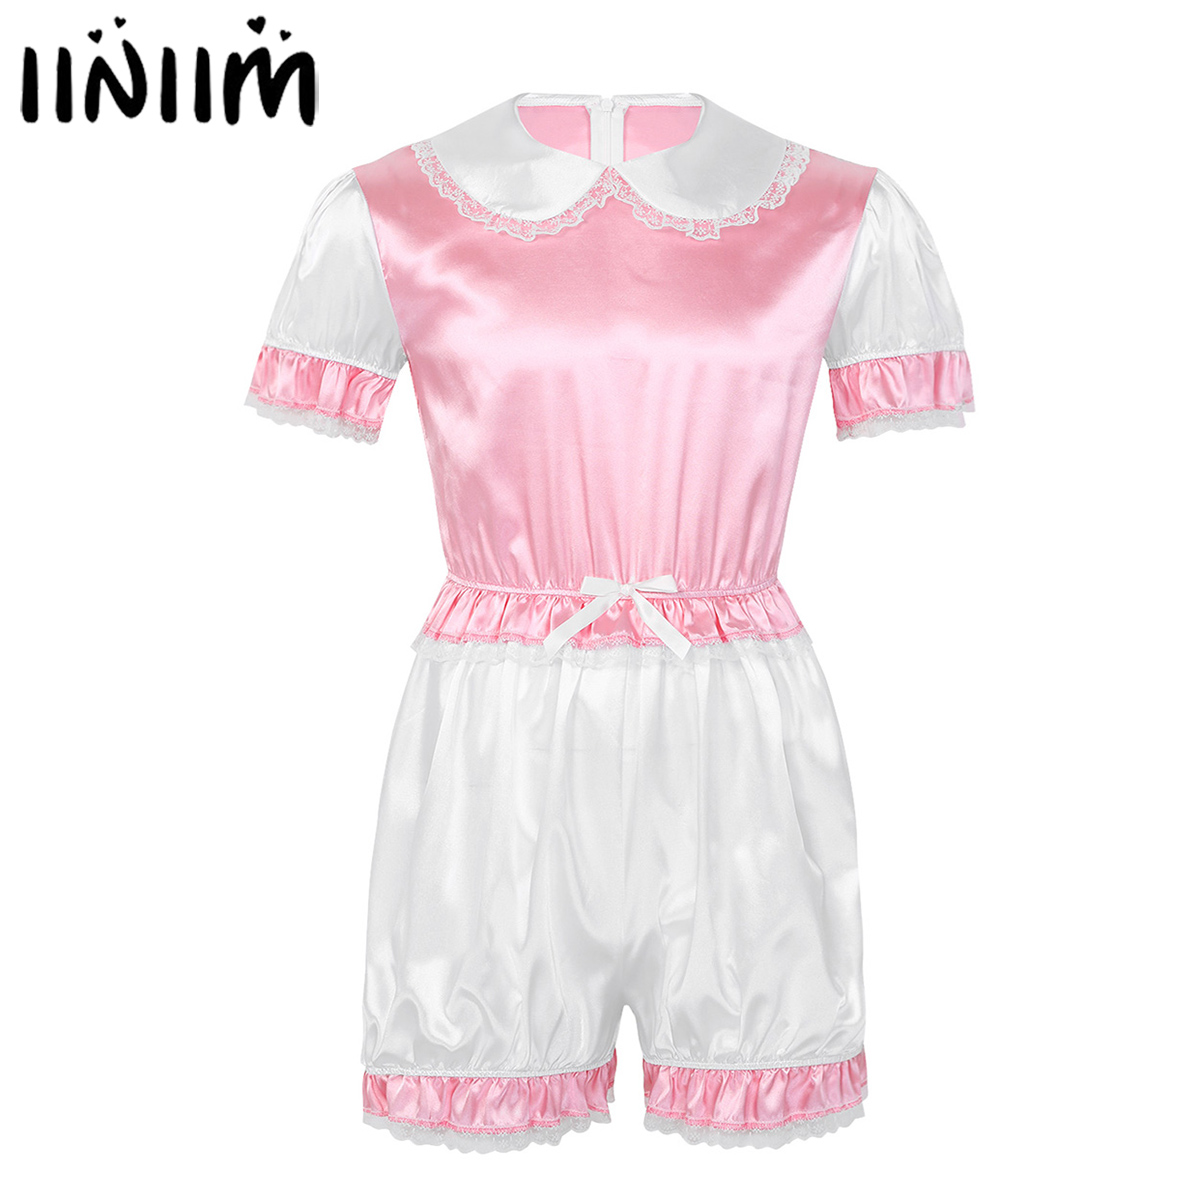 Mens Sissy Lingerie Satin Lace Babydoll Romper Exotic Adult Baby Cross Dresser Catsuit Gay Teddies Bodycon Body Suit Sexy Pajama